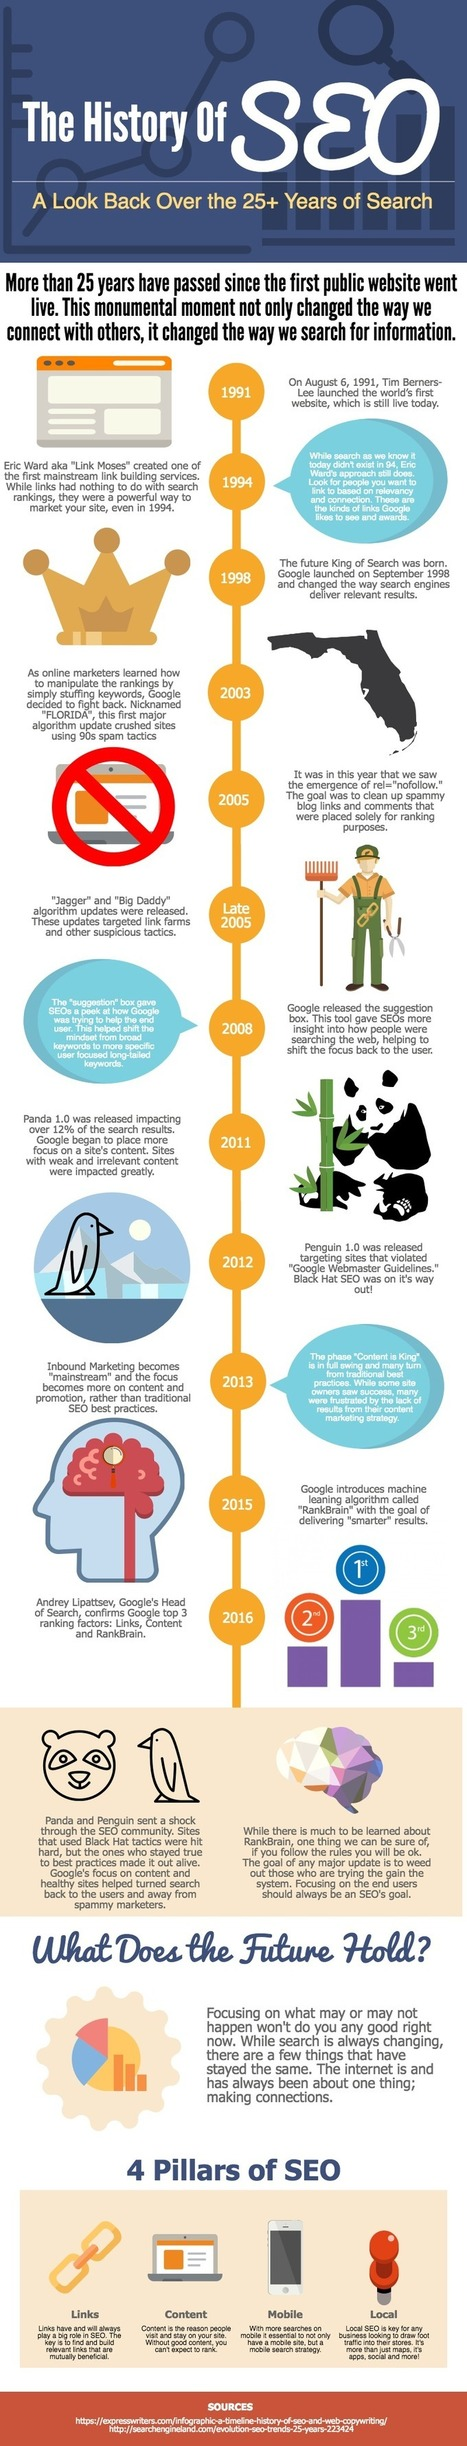 SEO Changes From The Dawn Of Time [Infographic] | Silicon Dales Australia - SEO Adelaide Internet Marketing and Publishing | Scoop.it